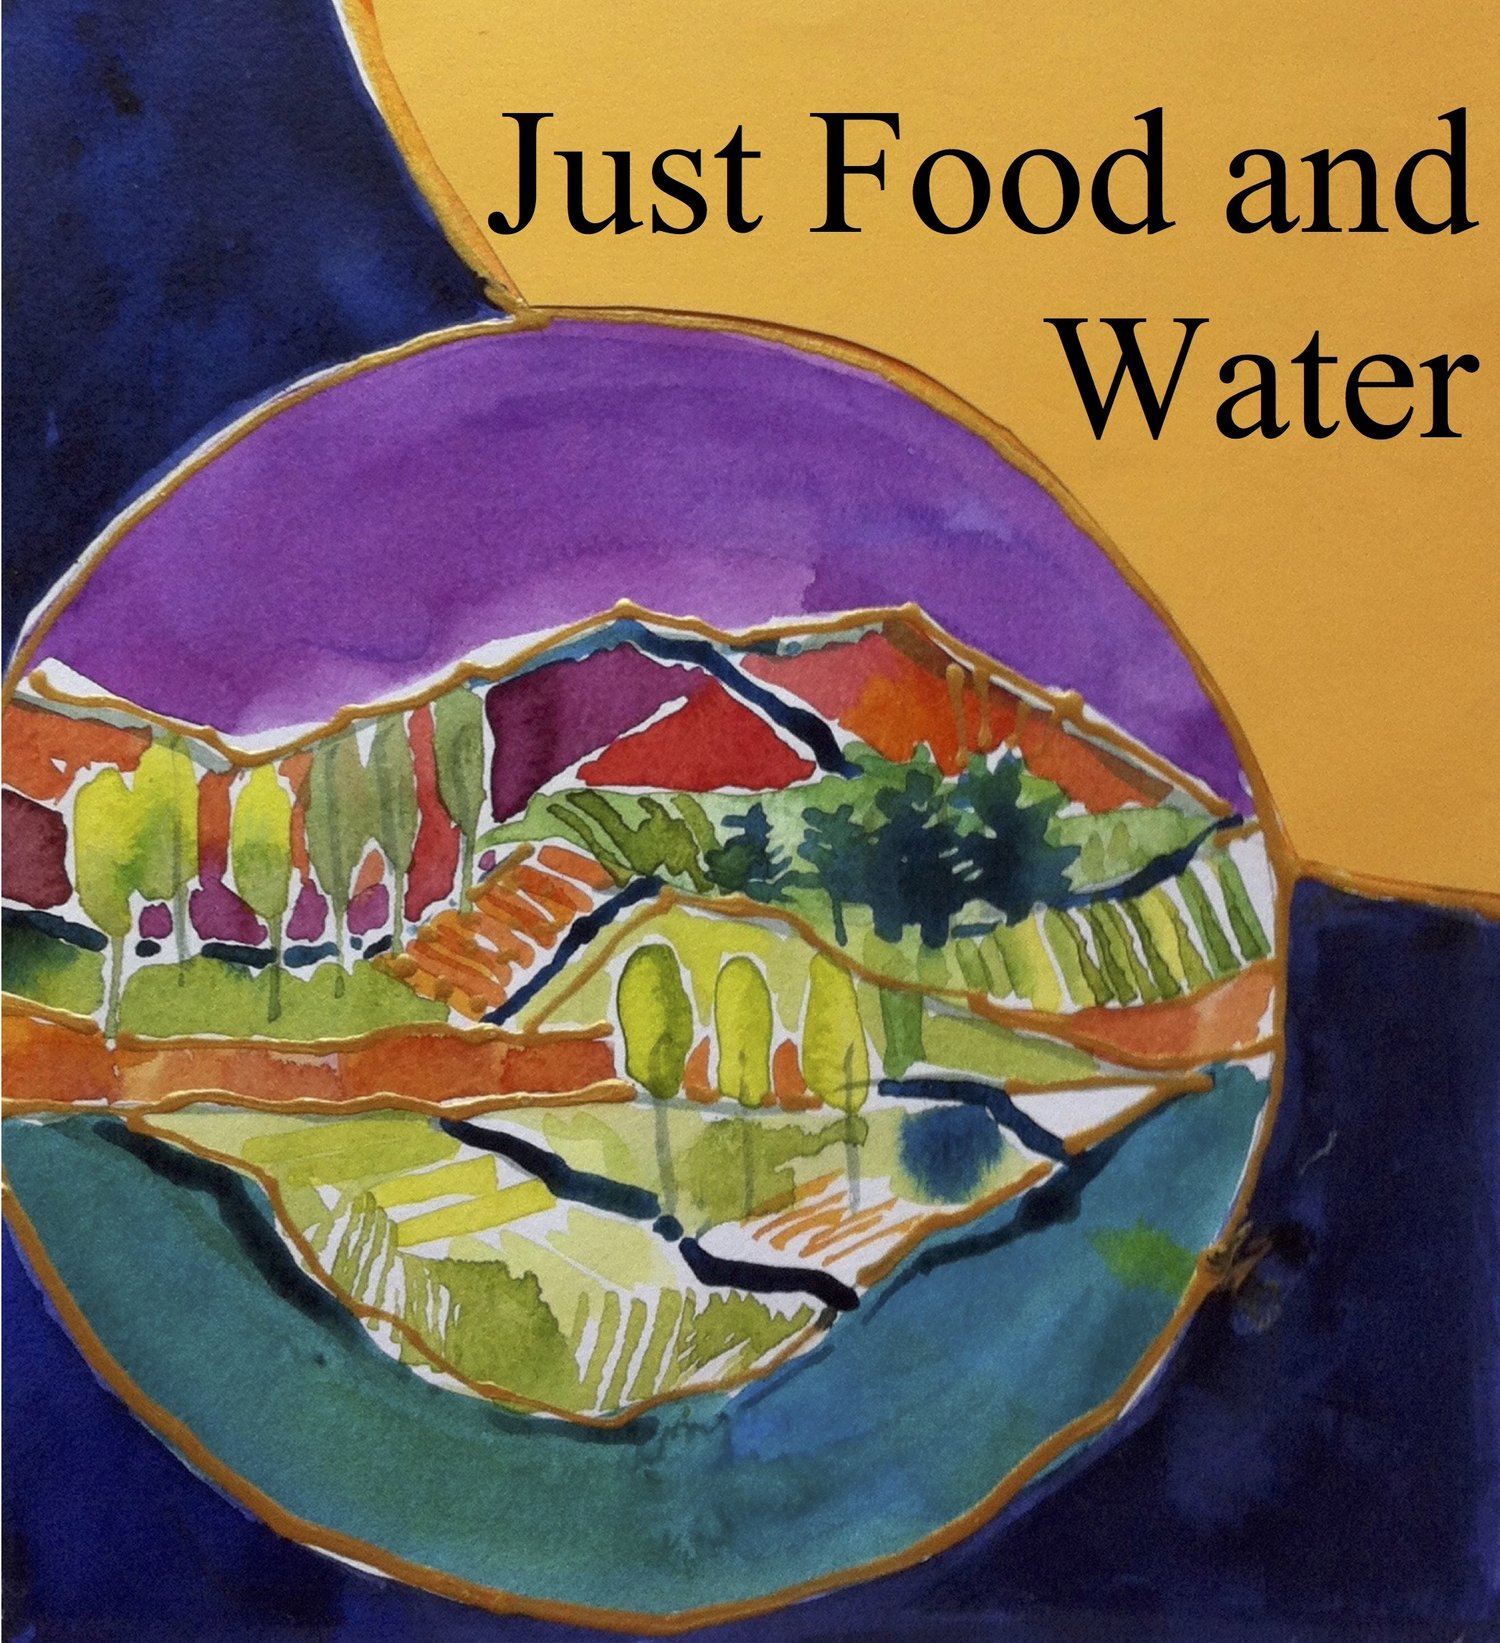 Just Food and Water